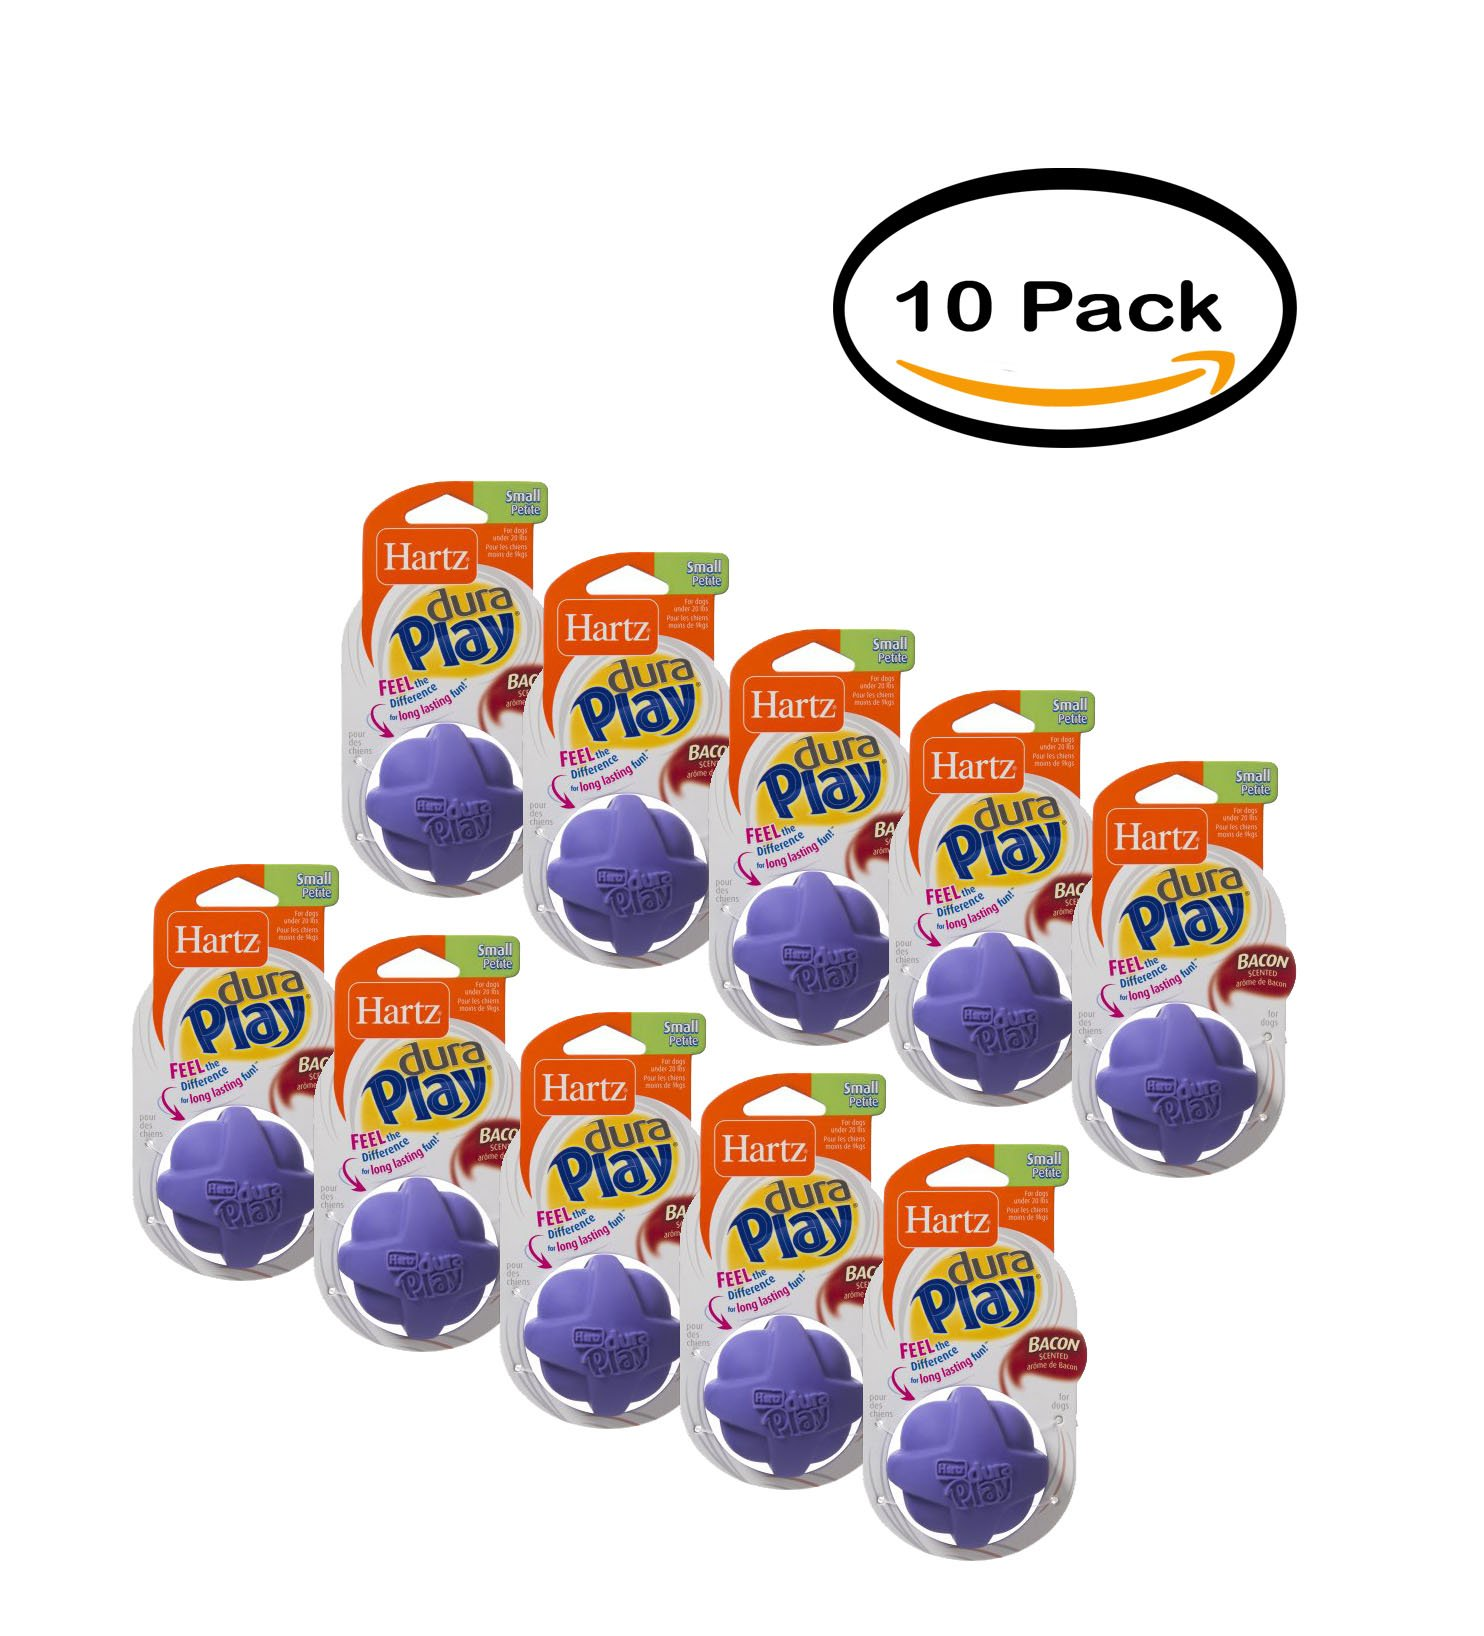 PACK OF 10 - Hartz Dura Play Small Ball Dog Toy